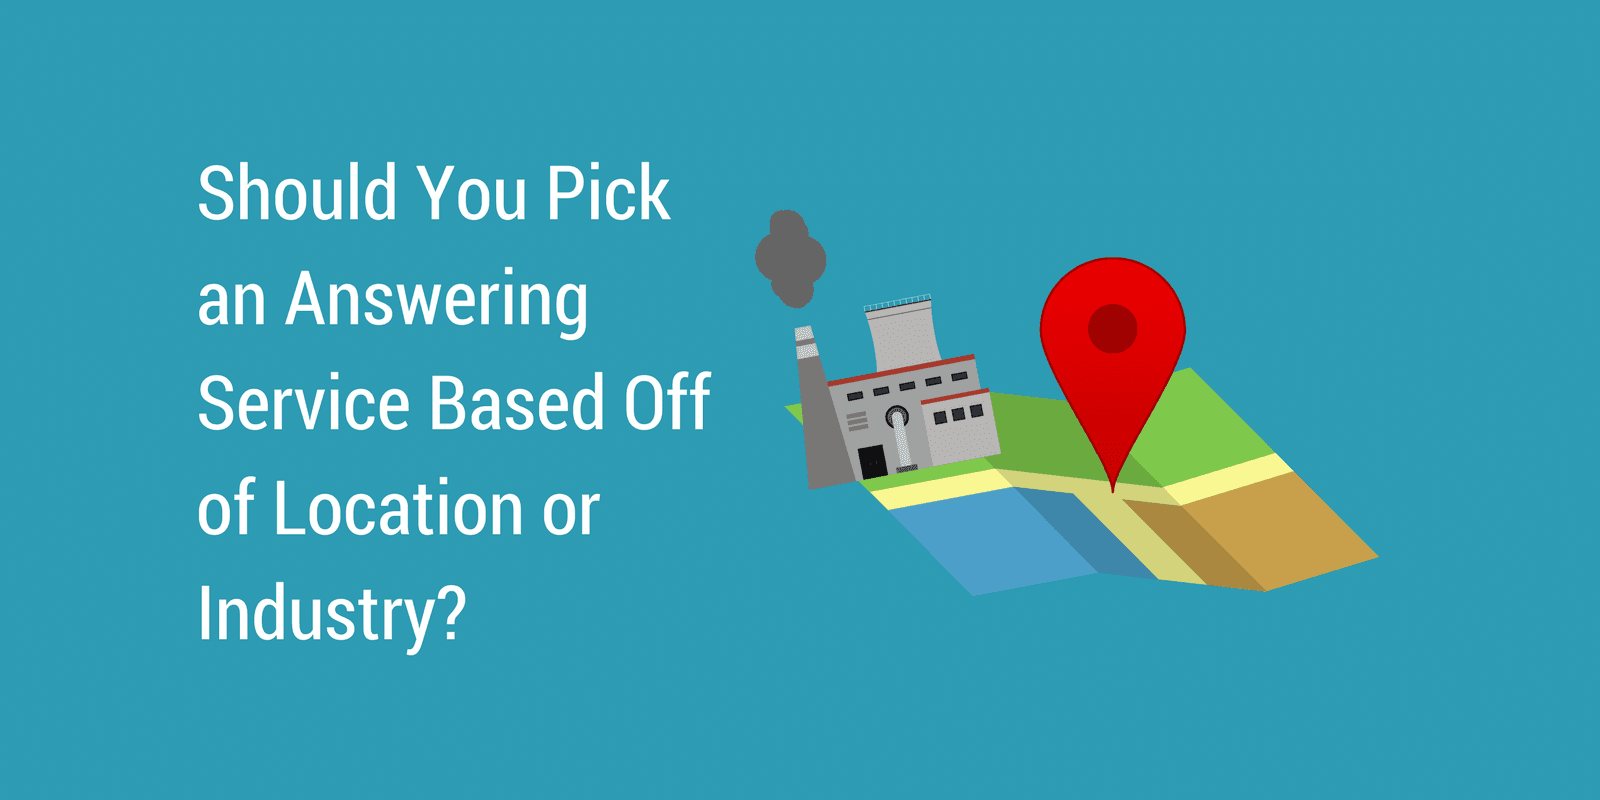 ShouldYou Pick an Answering Service Based Off Location or Industry?